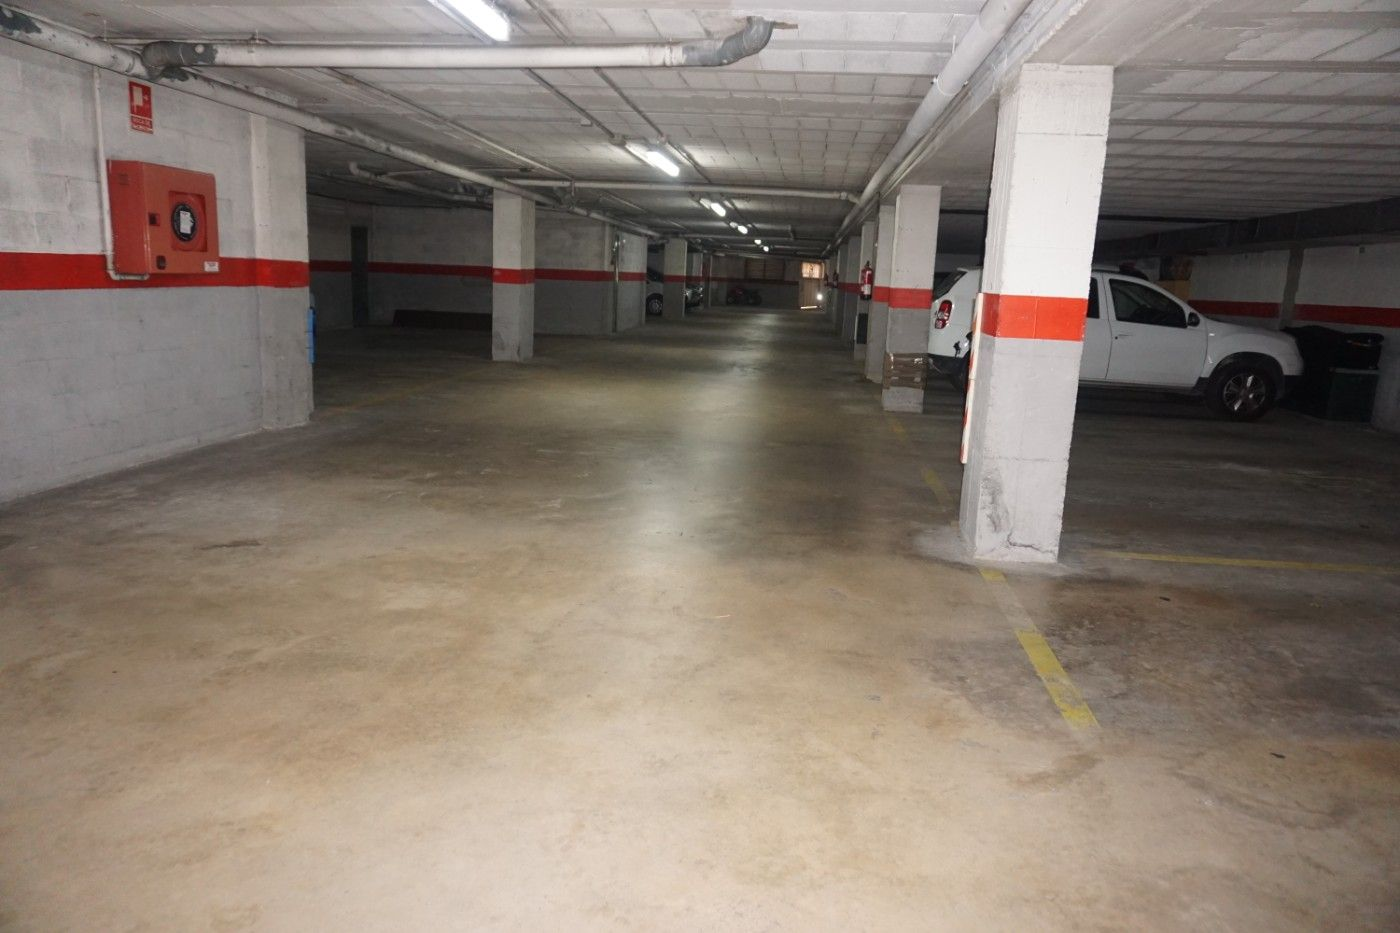 Car parking  Via aurelia. Pk  subterraneo zona barenys